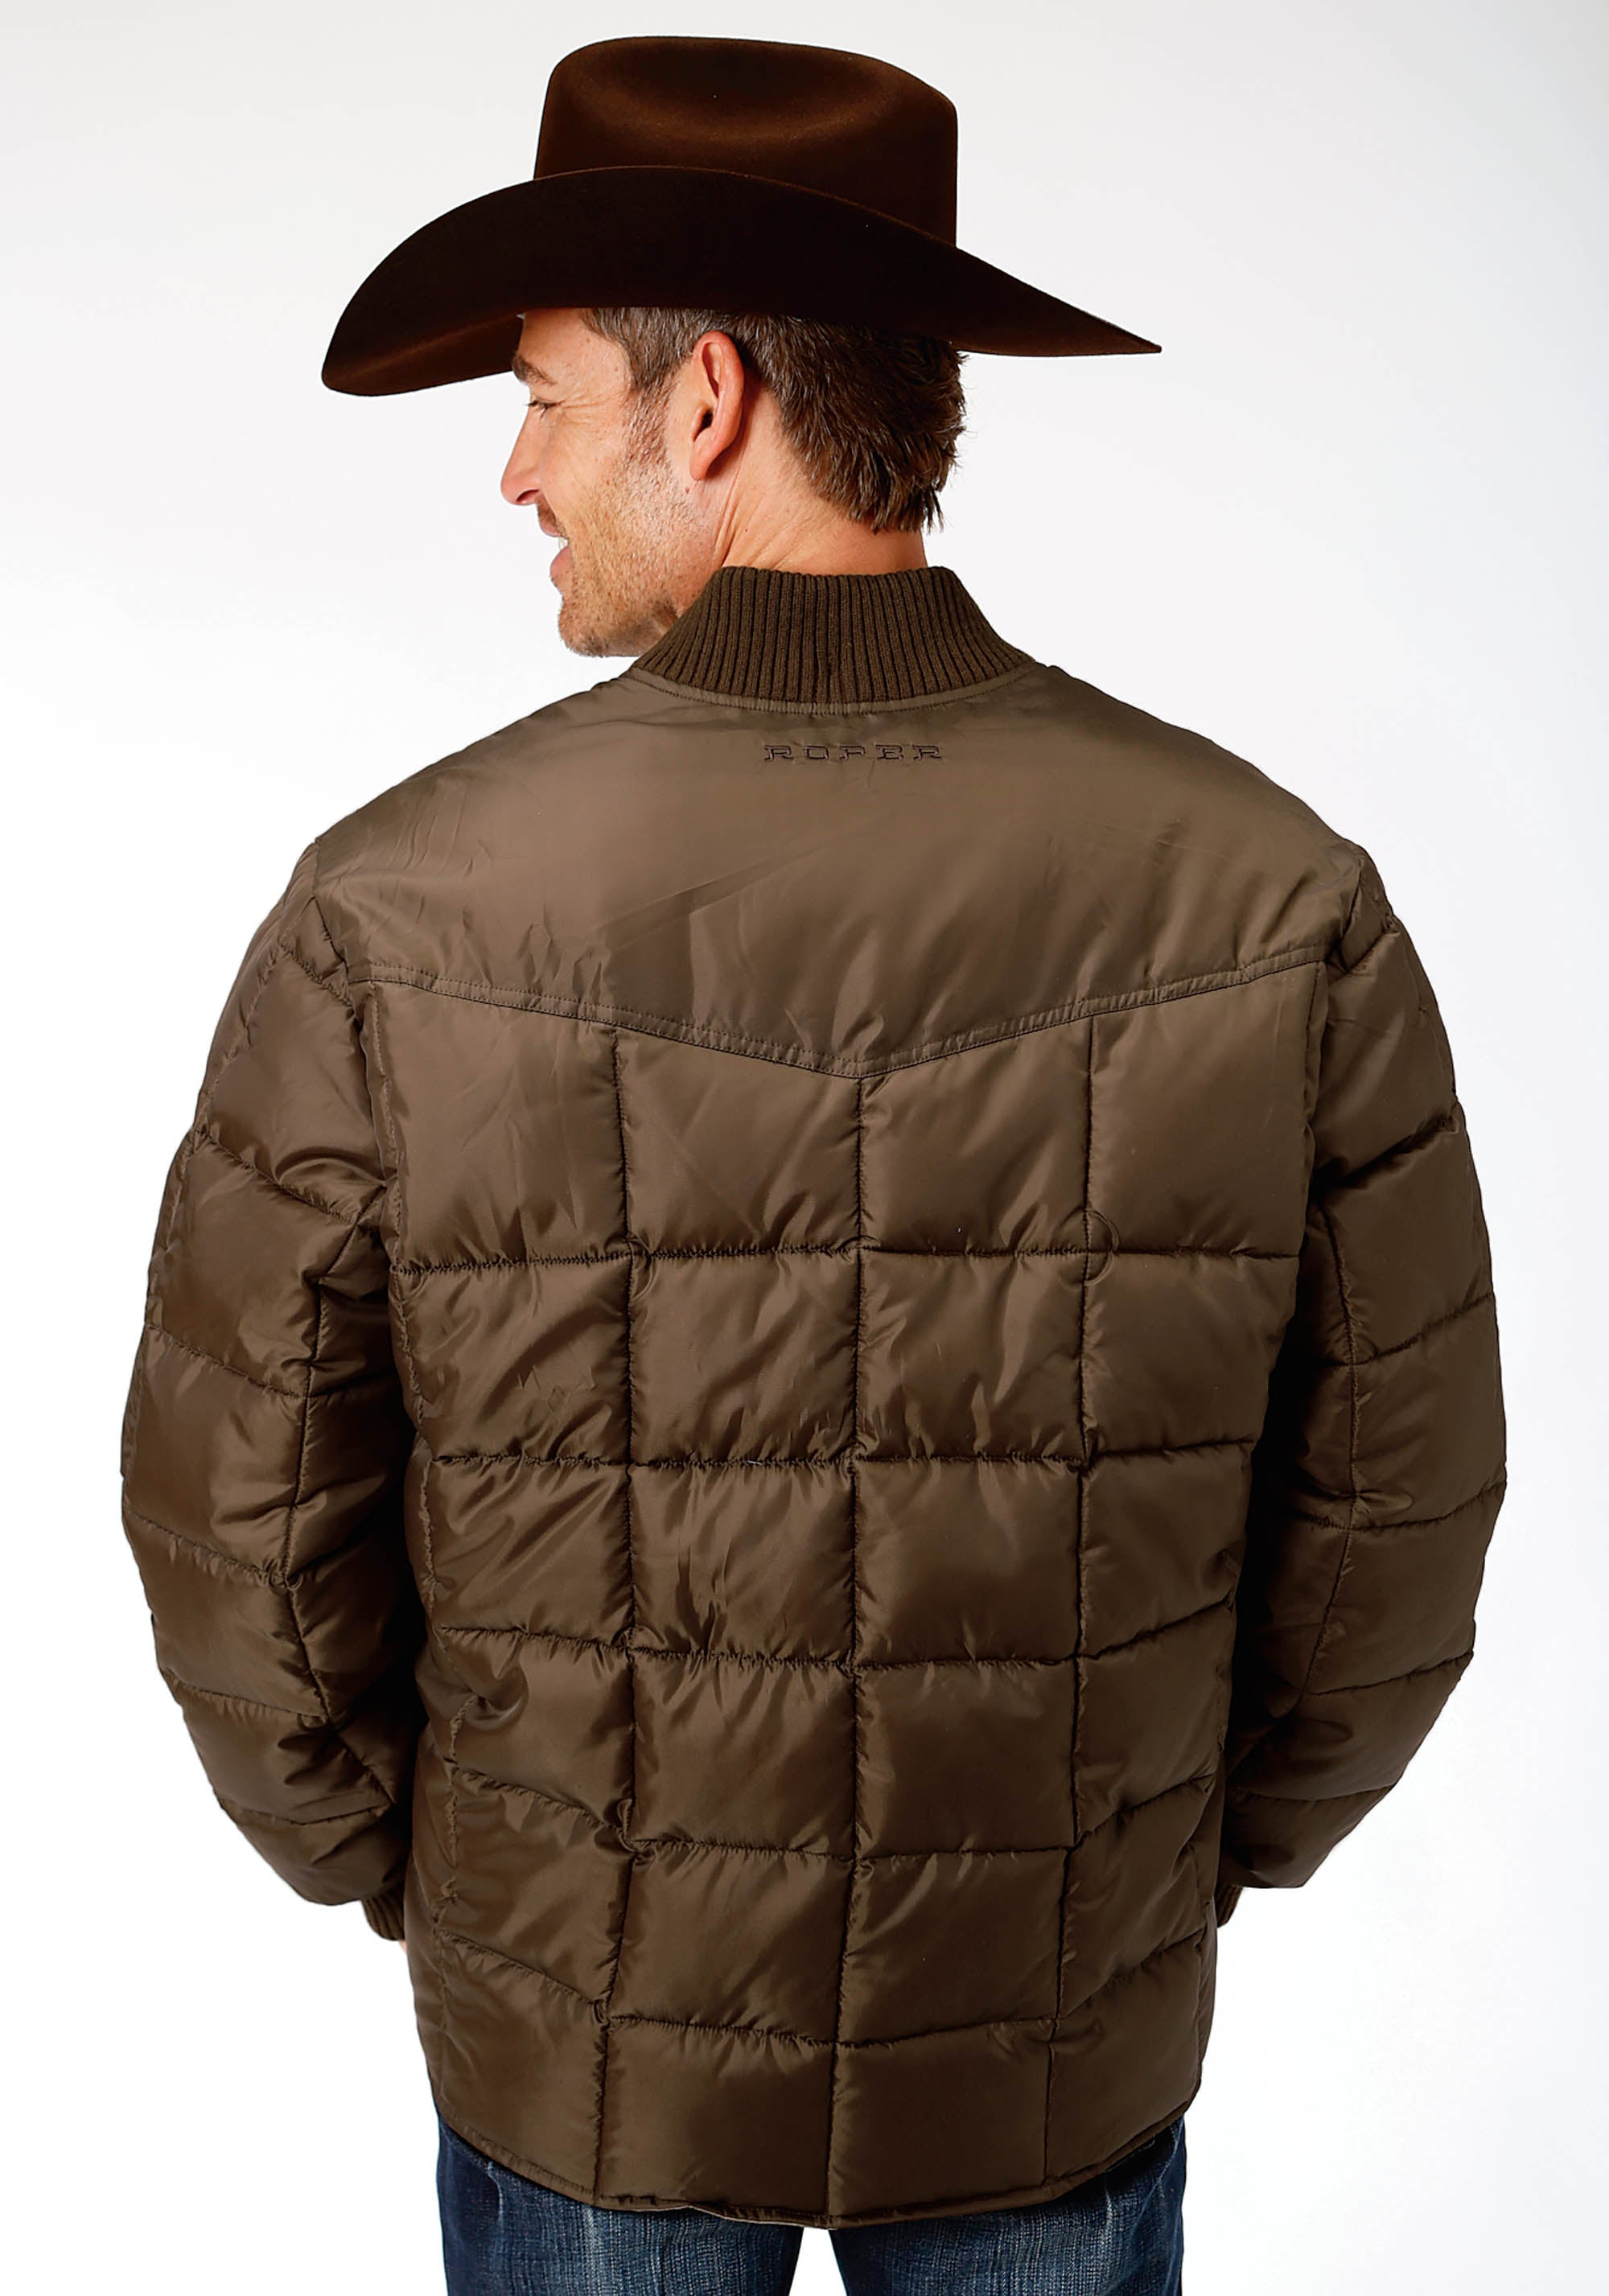 ROPER MENS BROWN 1473 CHOC QUILTED POLY-FILLED JACKET OPP OUTERWEAR- MEN'S JACKET